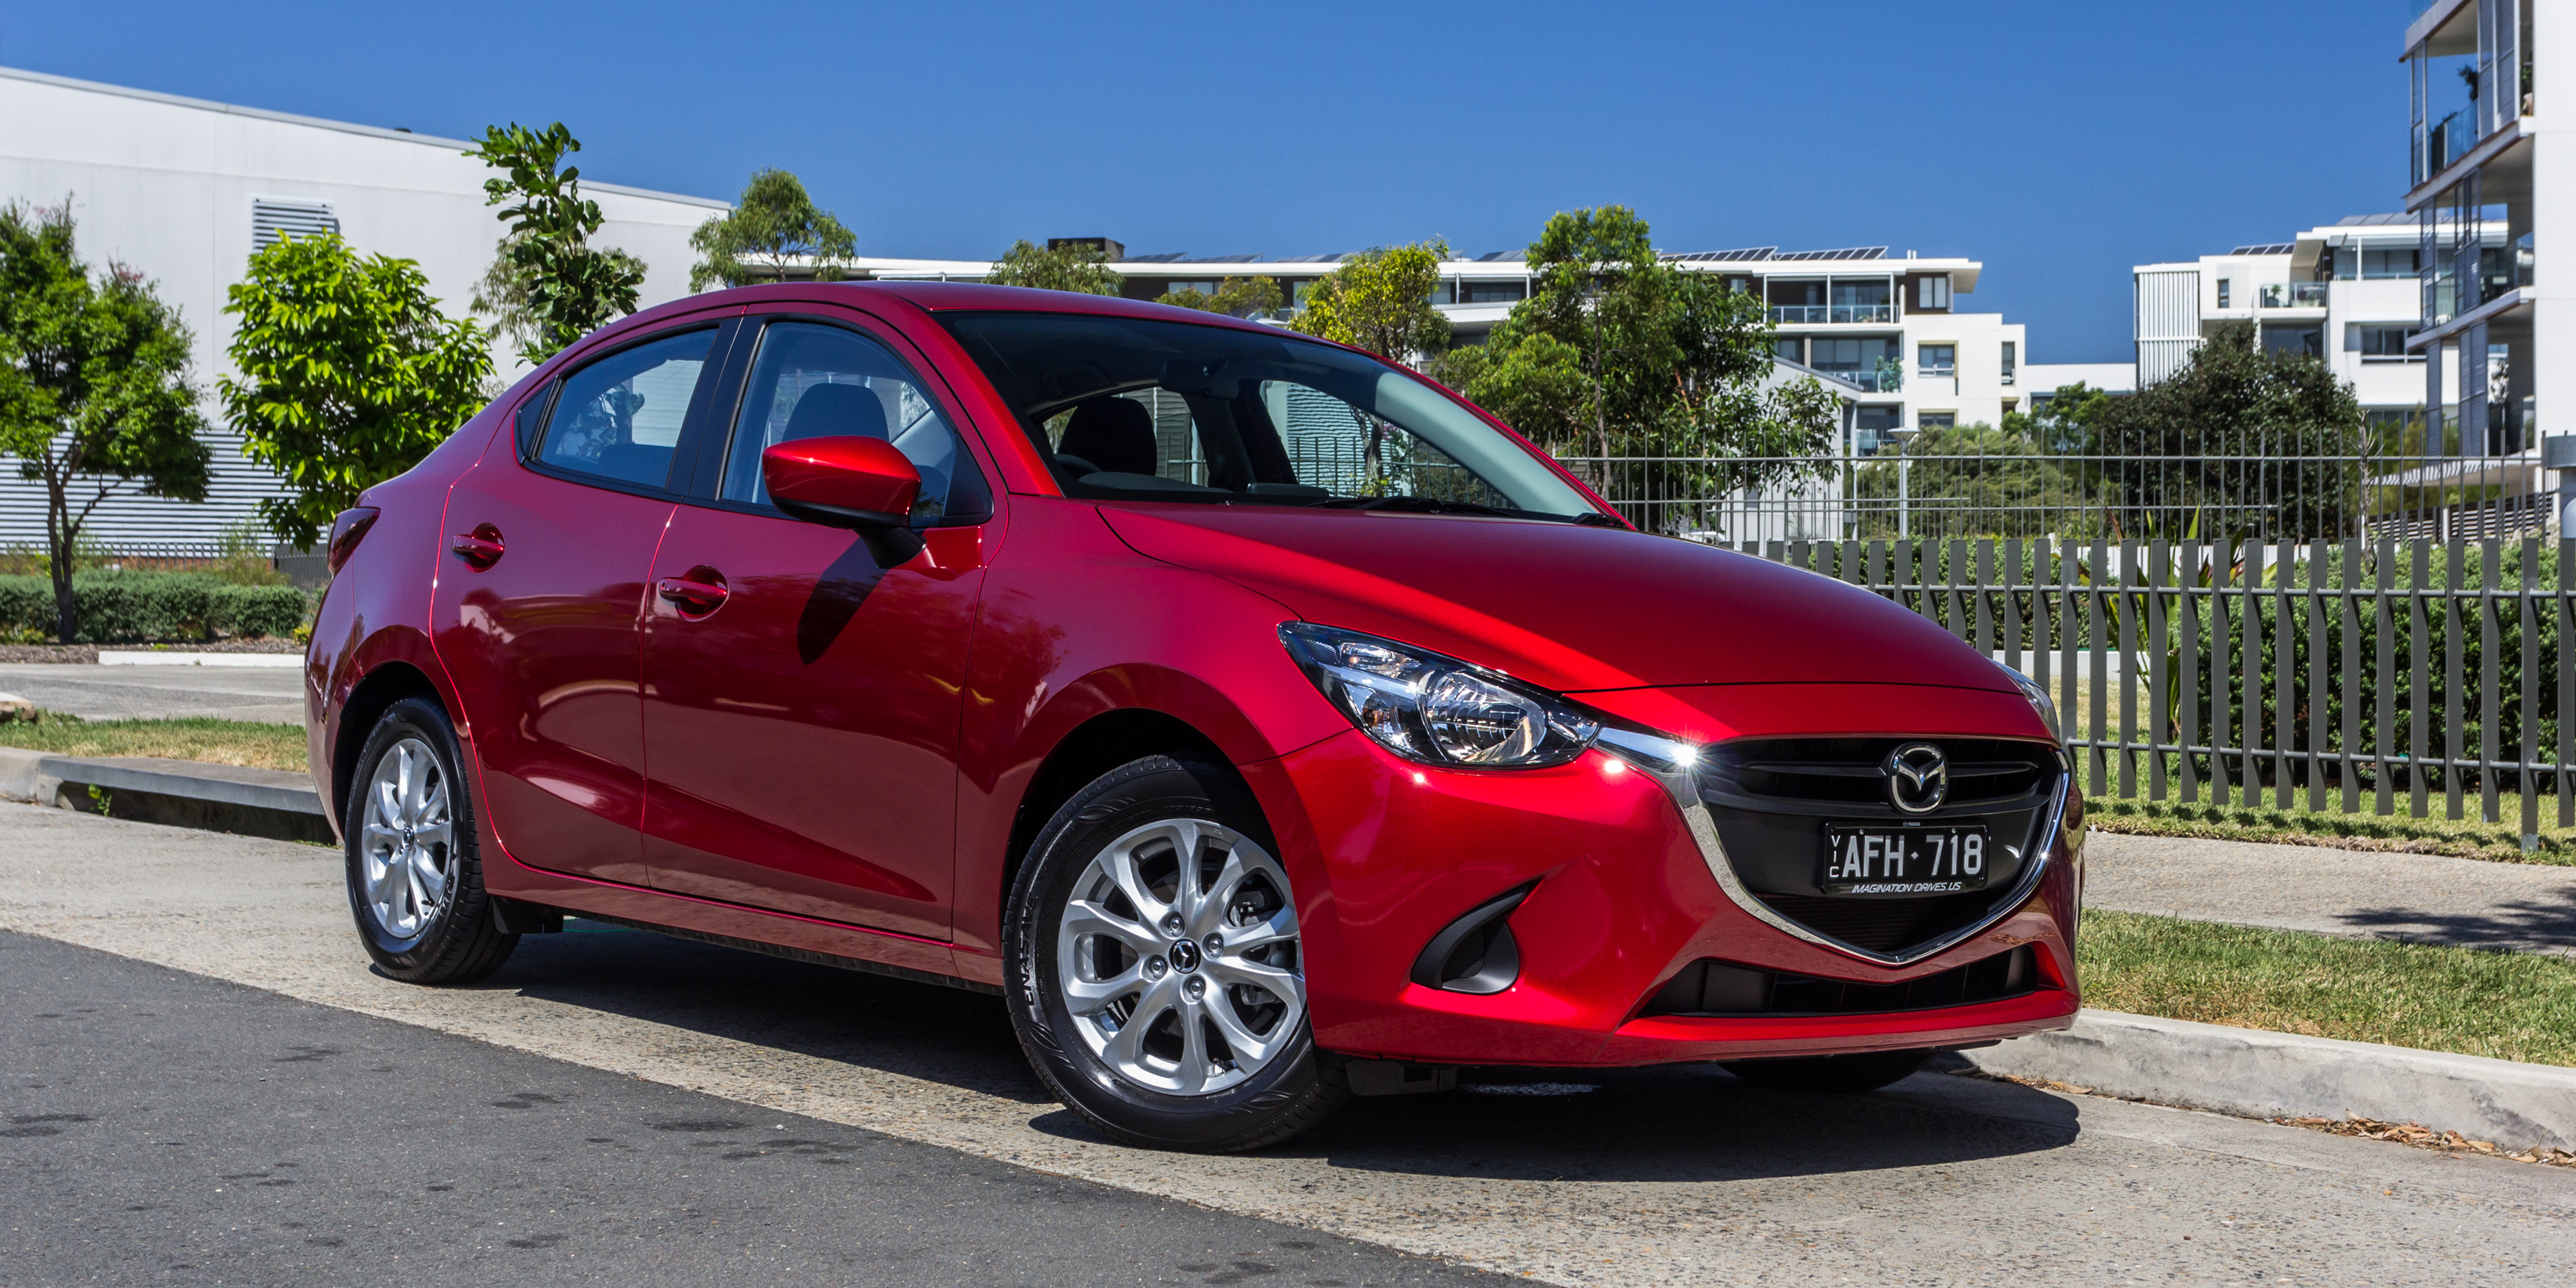 nissan march youtube 2017 with 2016 Mazda 2 Maxx Sedan Scr 11 on 2016 Mazda 2 Maxx Sedan Scr 11 further Sml Movies Supermariologan Wiki Fandom Powered By Wikia further March further Watch as well 2019 Hyundai Veloster Arrives With Fresh New Design.